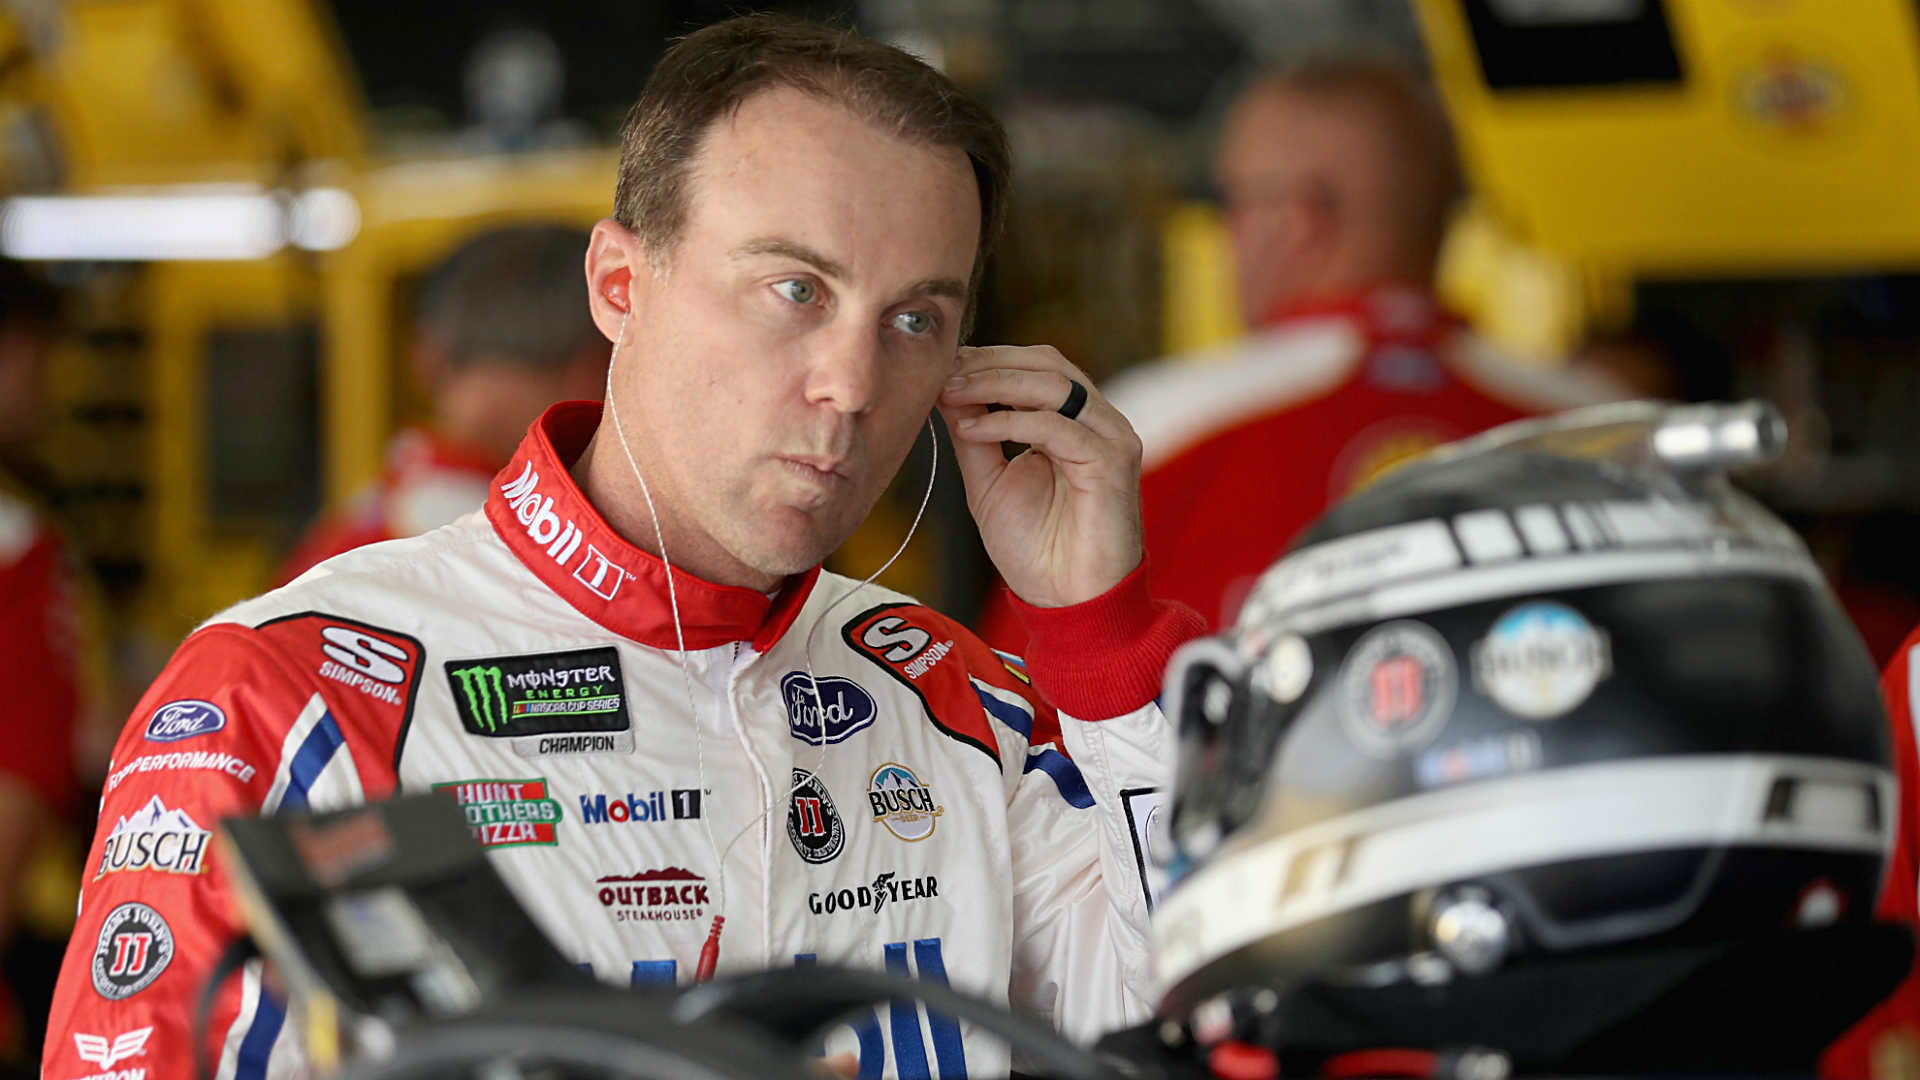 NASCAR at Charlotte: Kevin Harvick facing big challenges in bid for 3 wins in row